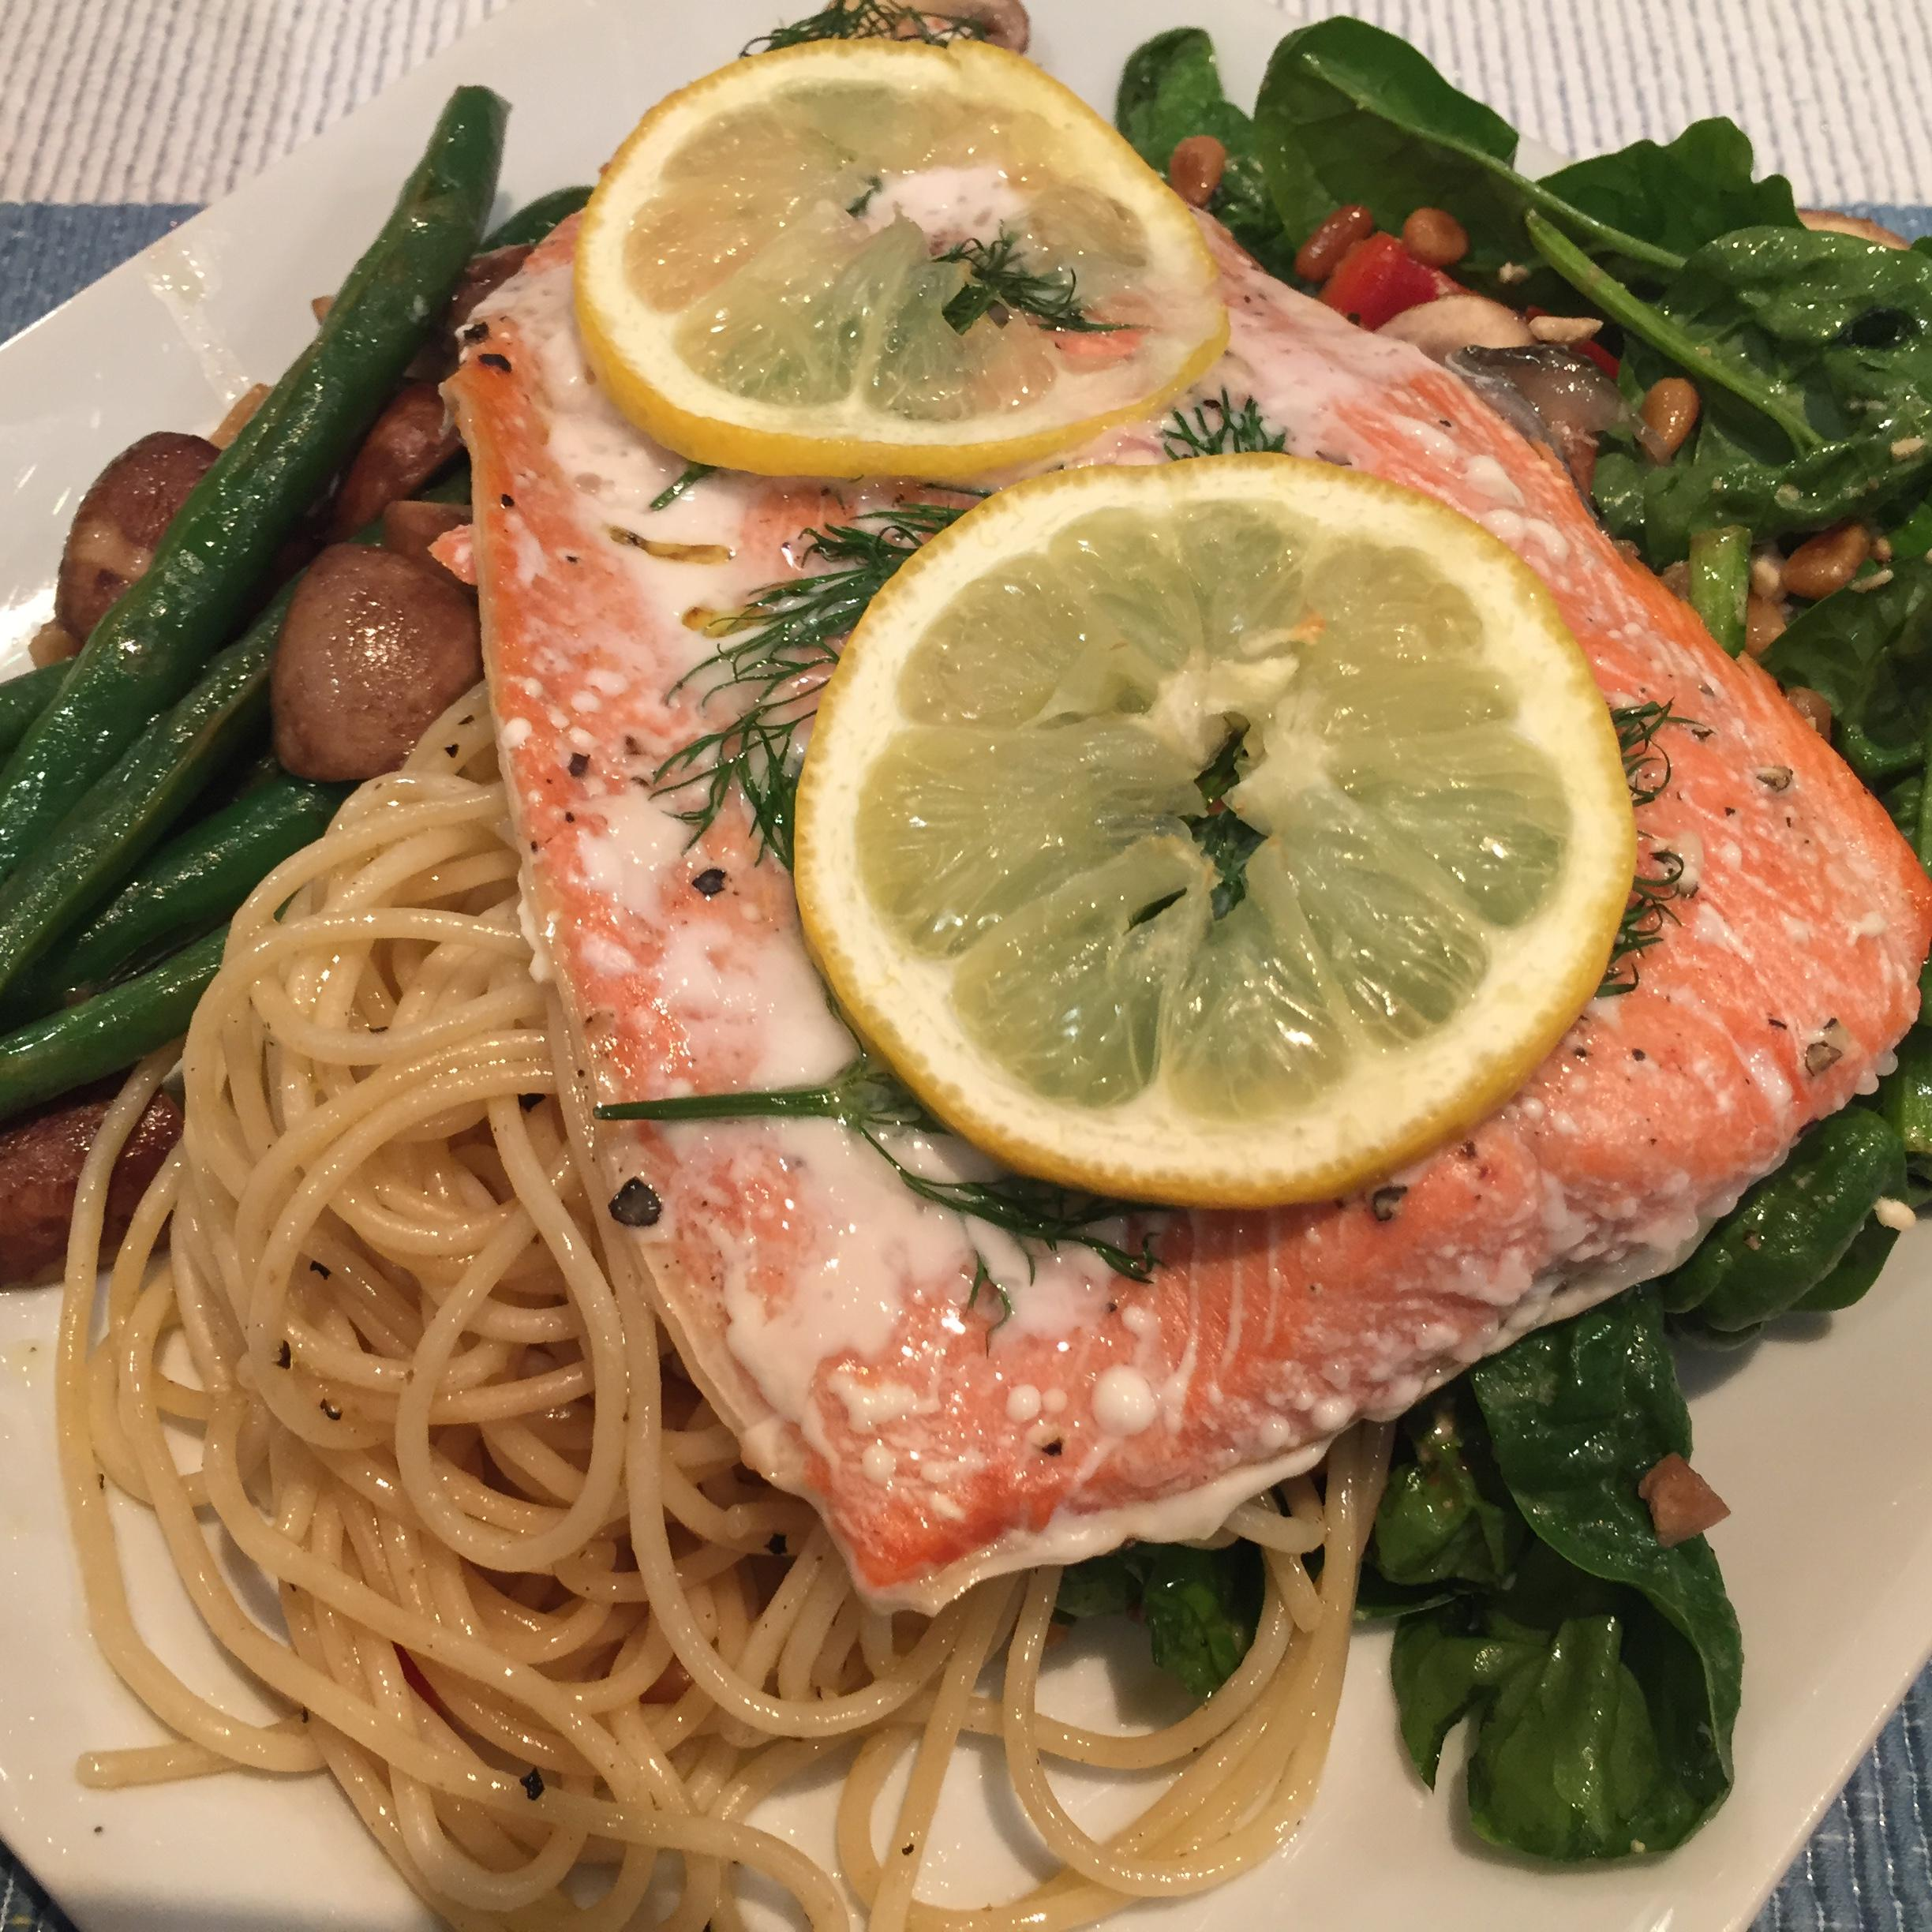 Baked Salmon with lemon and dill; simple pasta, spinach salad, green beans and mushrooms